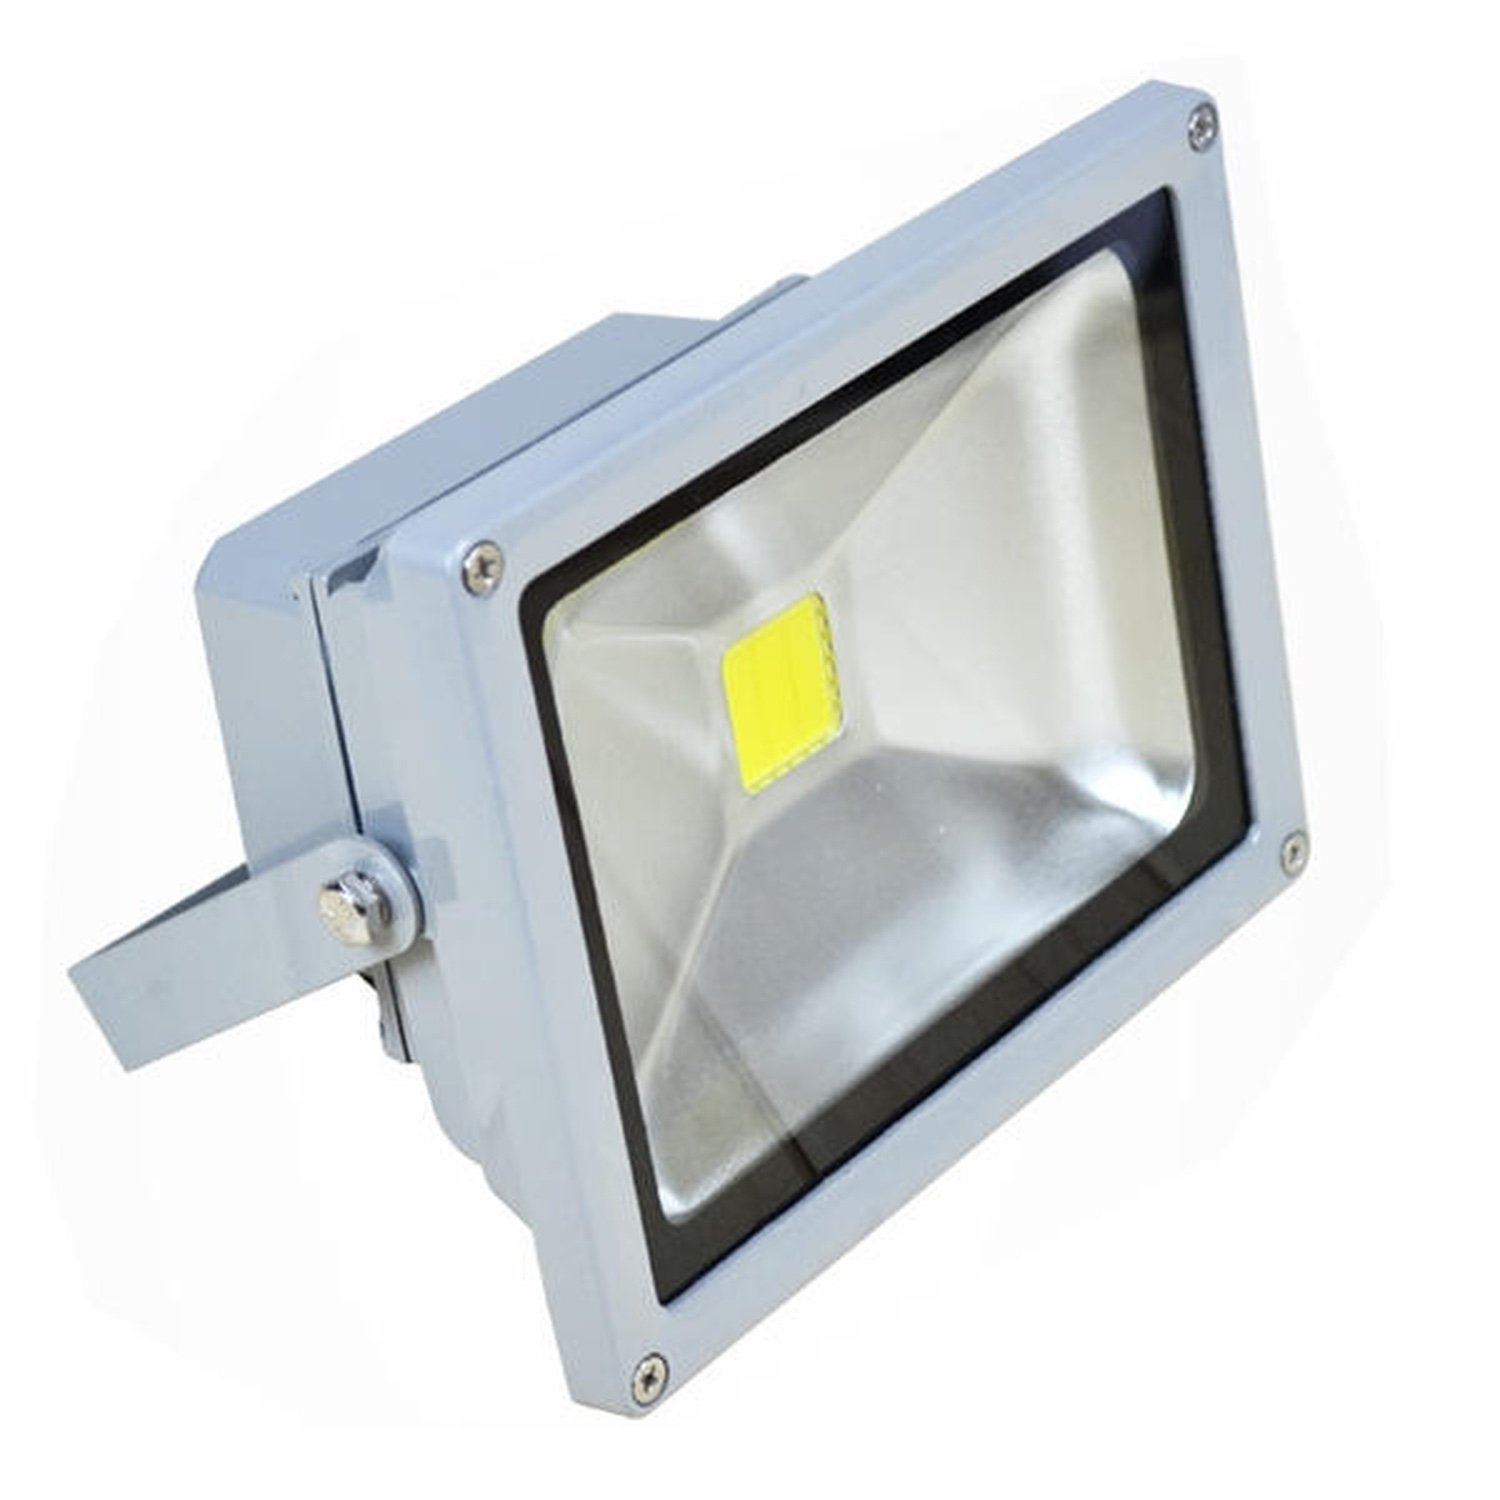 LED Spotlight Spotlight 20W 3000K Warm Light